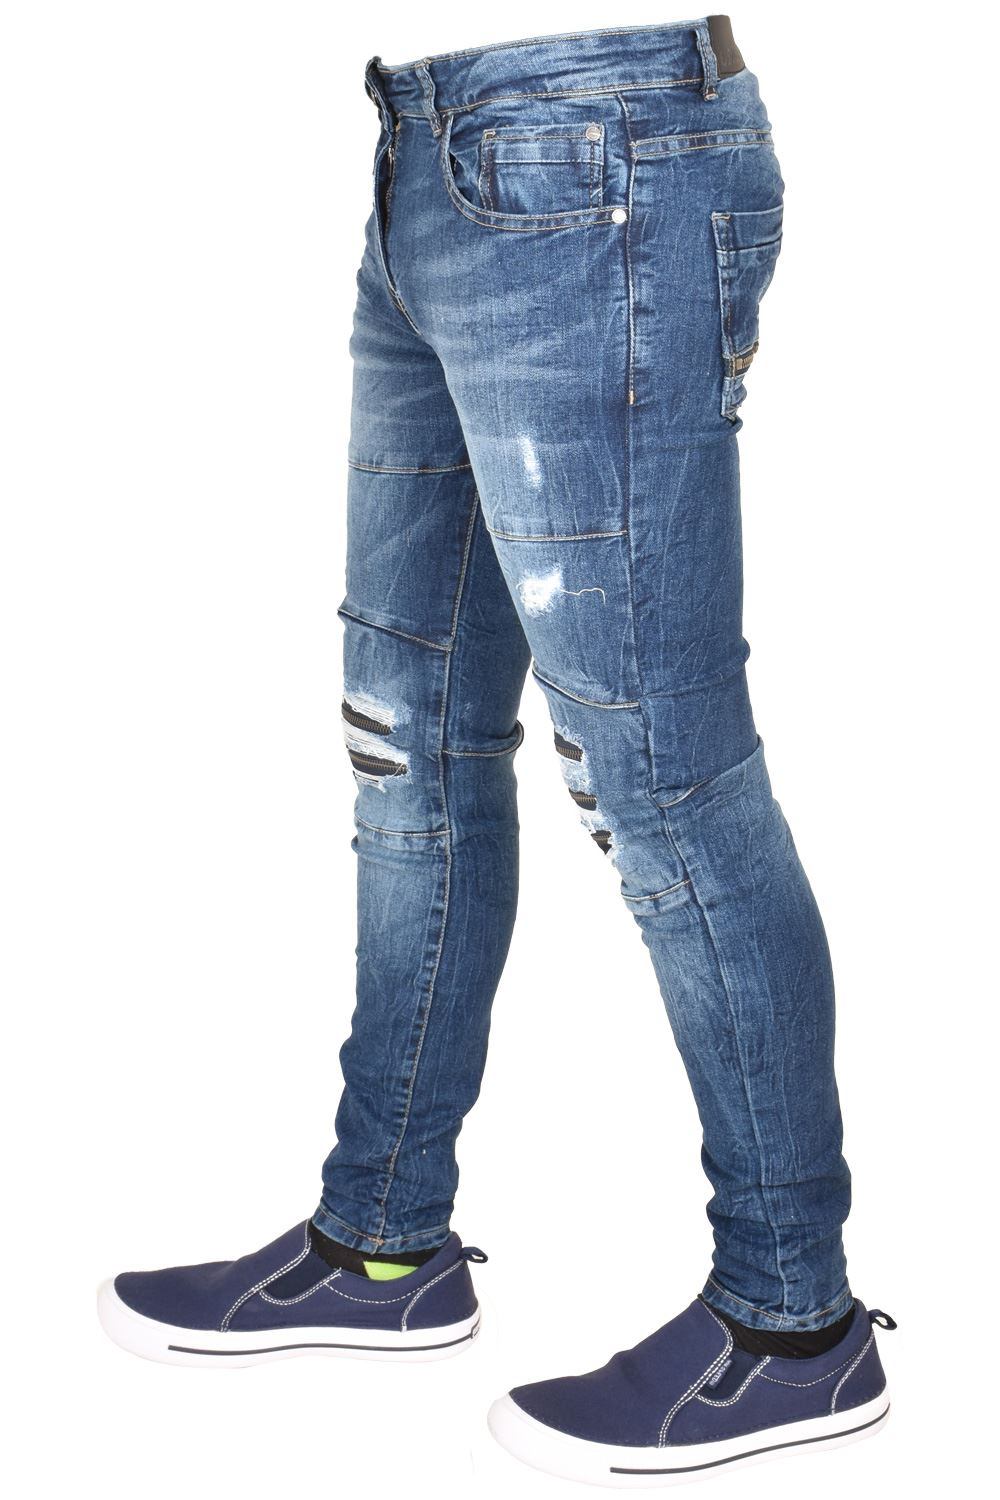 Enzo-Mens-Ripped-Jeans-Skinny-Slim-Fit-Denim-Pants-Casual-Trousers-Size-28-40 thumbnail 9